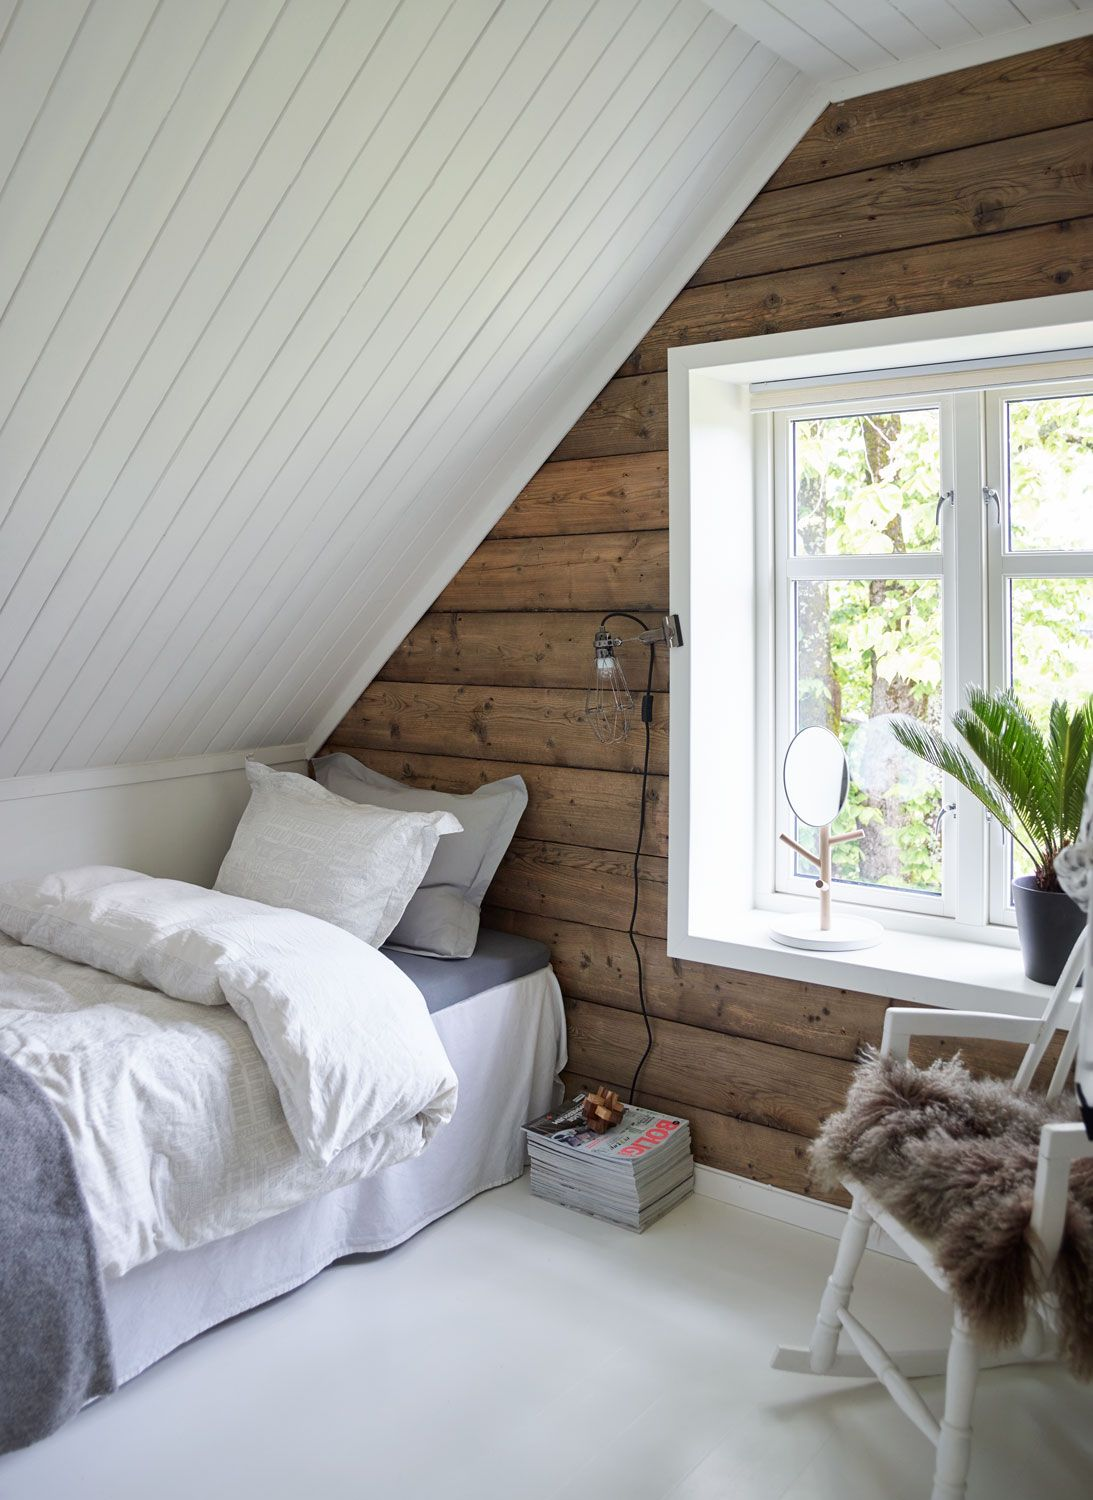 Attic bedroom design and d cor tips small attic bedrooms for Single bedroom ideas